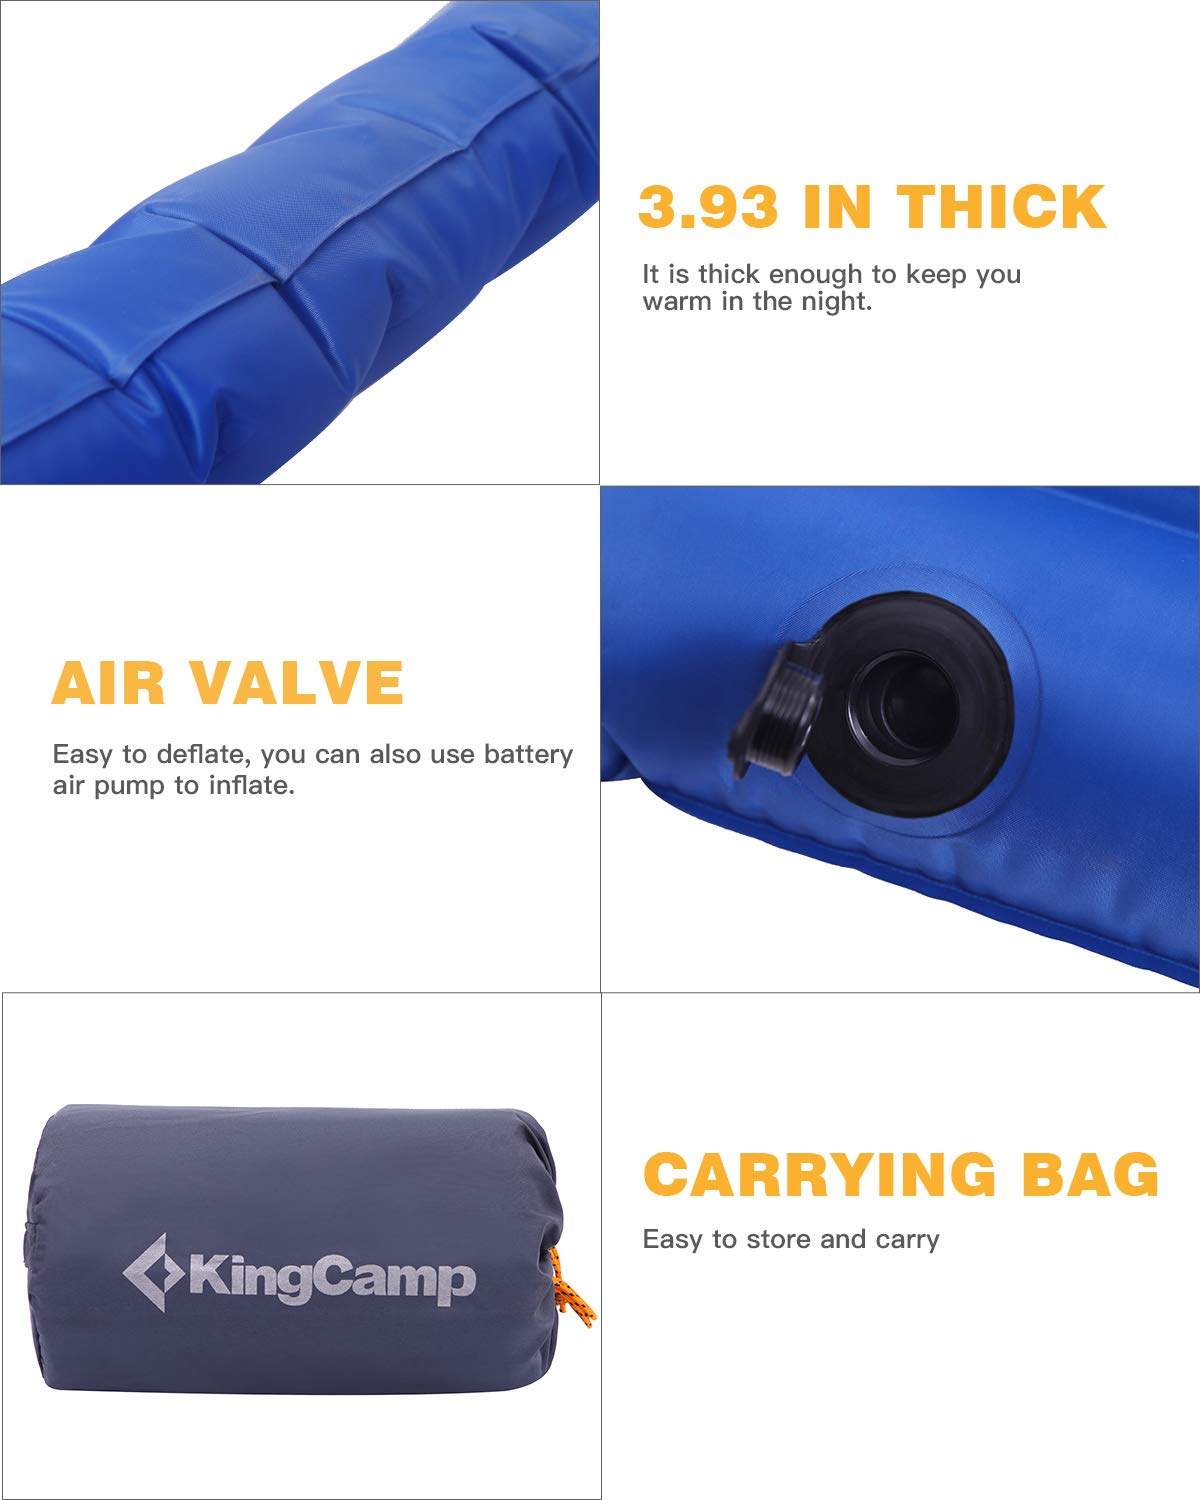 Single and Double Two Size KingCamp Light Camping Sleeping Air Mattress Pad with Built-in Foot Pump